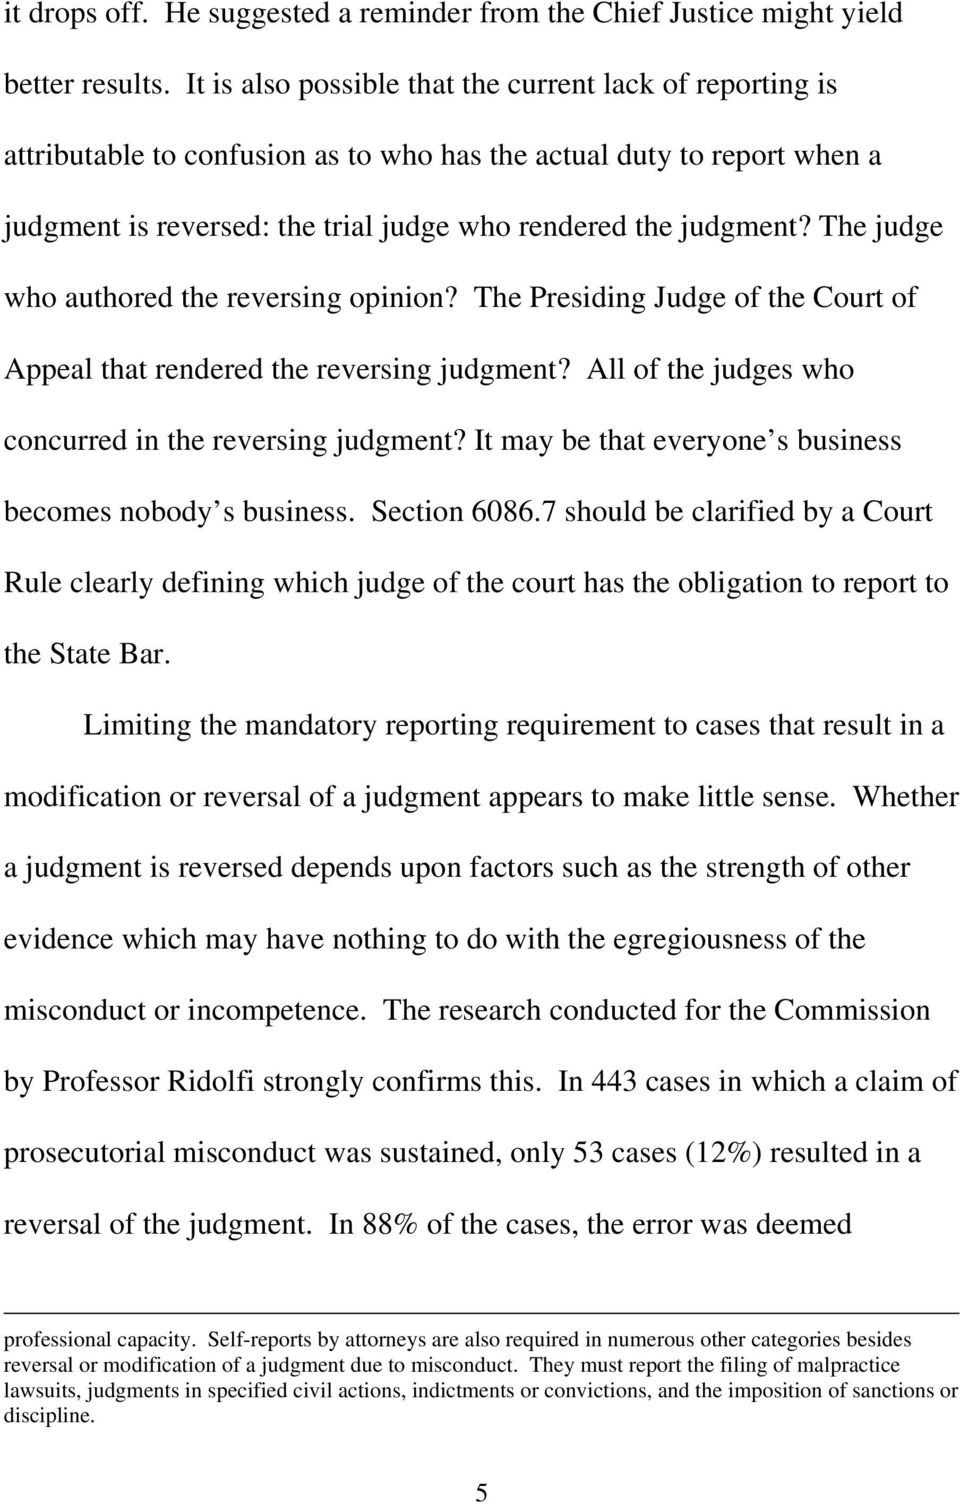 The judge who authored the reversing opinion? The Presiding Judge of the Court of Appeal that rendered the reversing judgment? All of the judges who concurred in the reversing judgment?